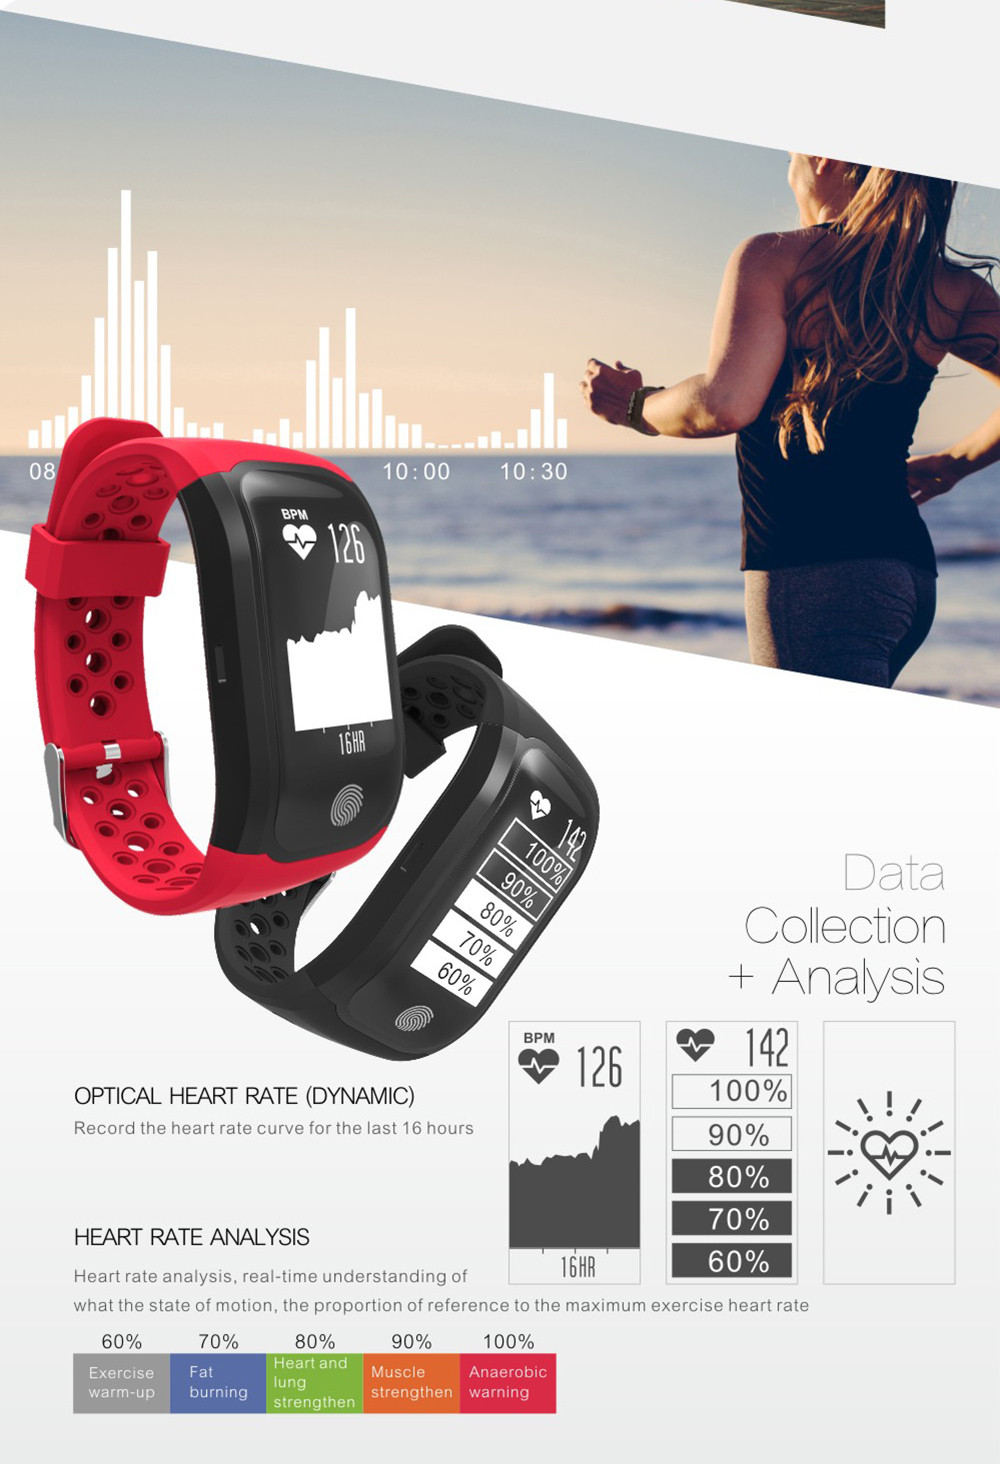 S908 Gps Sports Smartband 6158 Free Shipping Lightweight Cut Off Circuit Remotely Car Tracker Memory Data Heart Rate Sleep Monitor Sedentary Reminder Pedometer Ip68 Waterproof Black